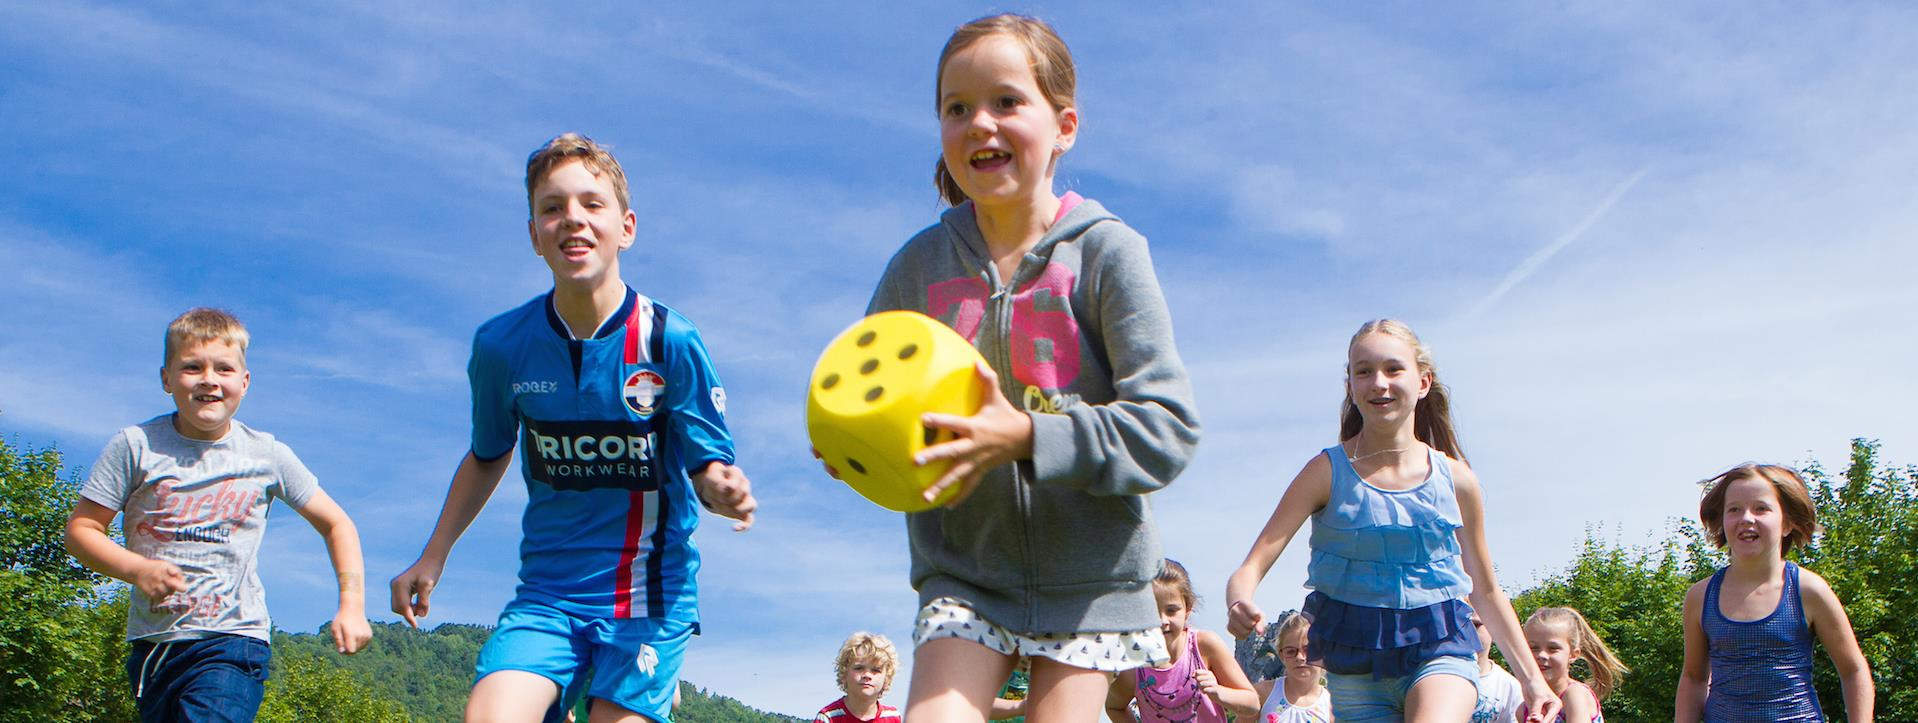 Animations Camping Sites et Paysages LA ROCHE D'ULLY - ORNANS